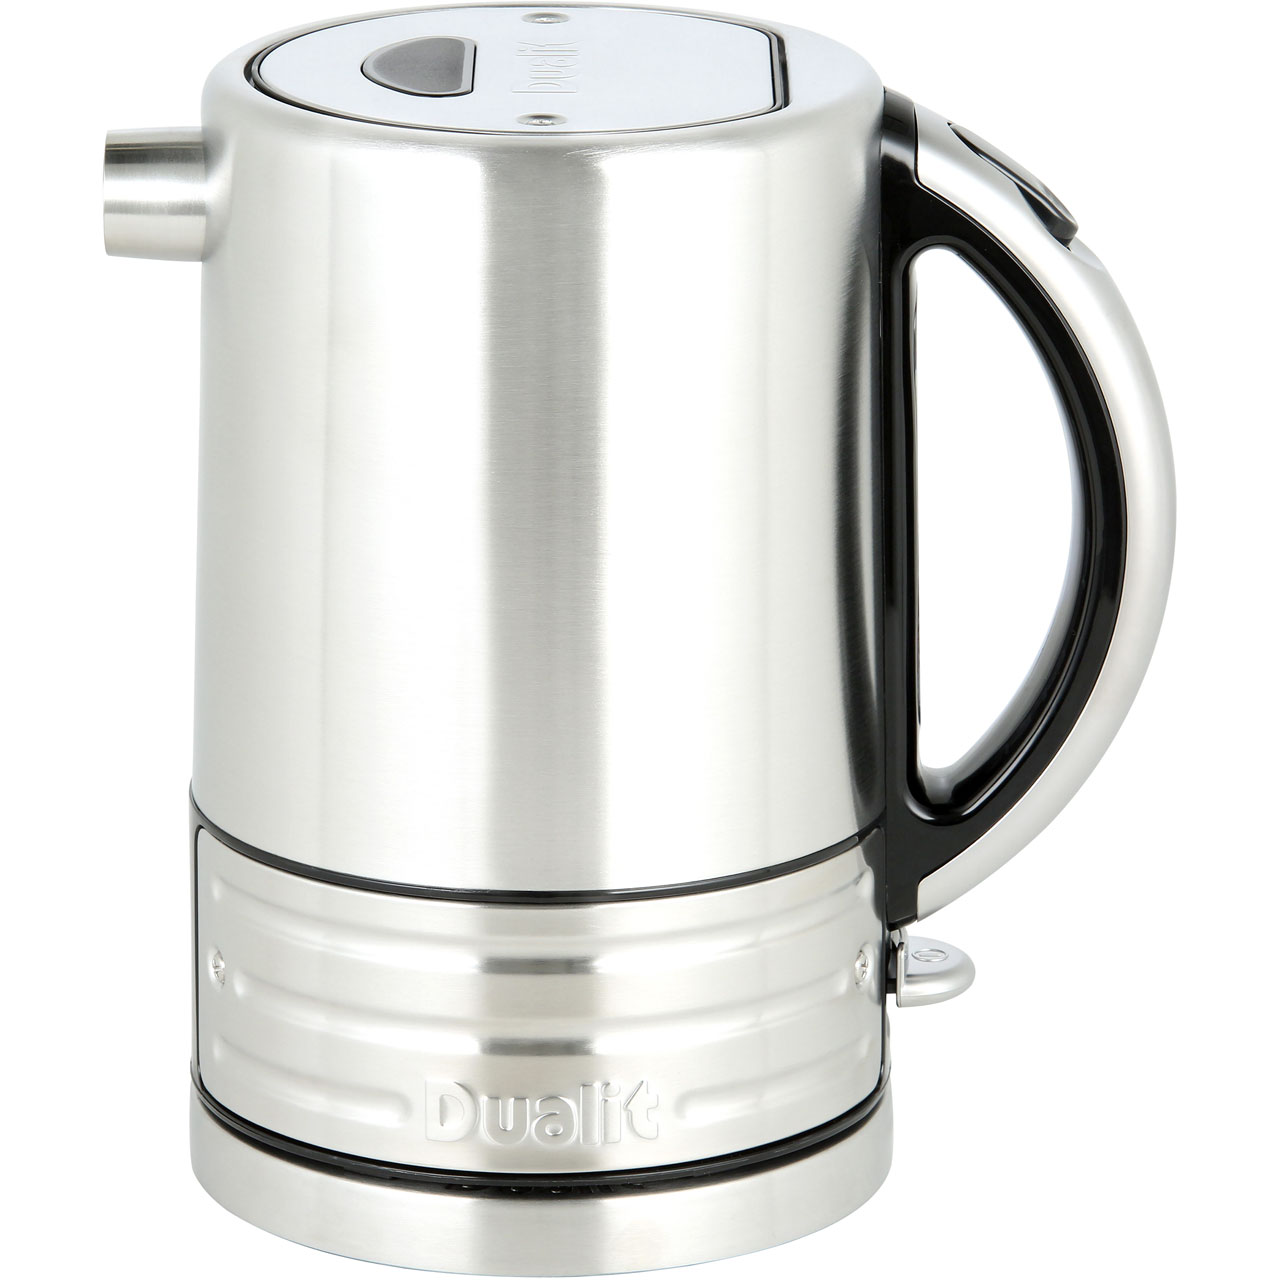 cb6e3a8bdb45 ... Dualit Architect 72905 Kettle - Black / Brushed Steel - 72905_BKB - 1  ...